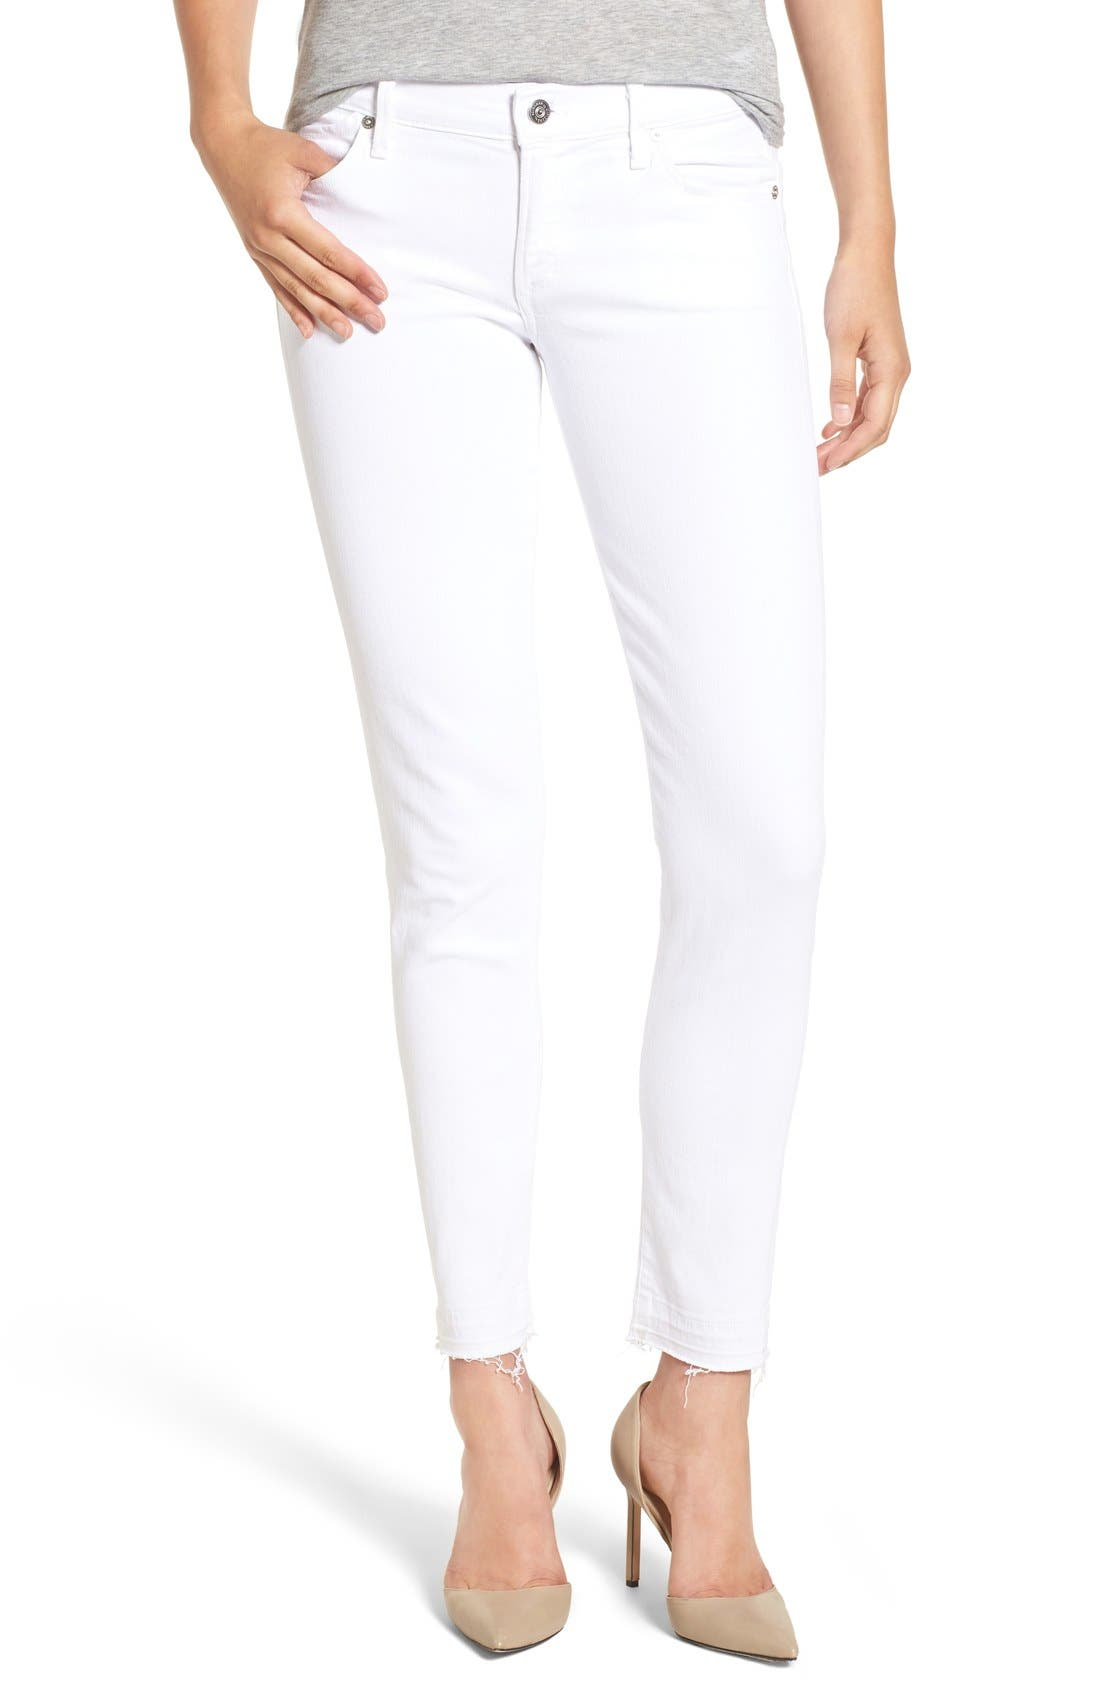 Alternate Image 1 Selected - Citizens of Humanity Skinny Ankle Jeans (Optic White)